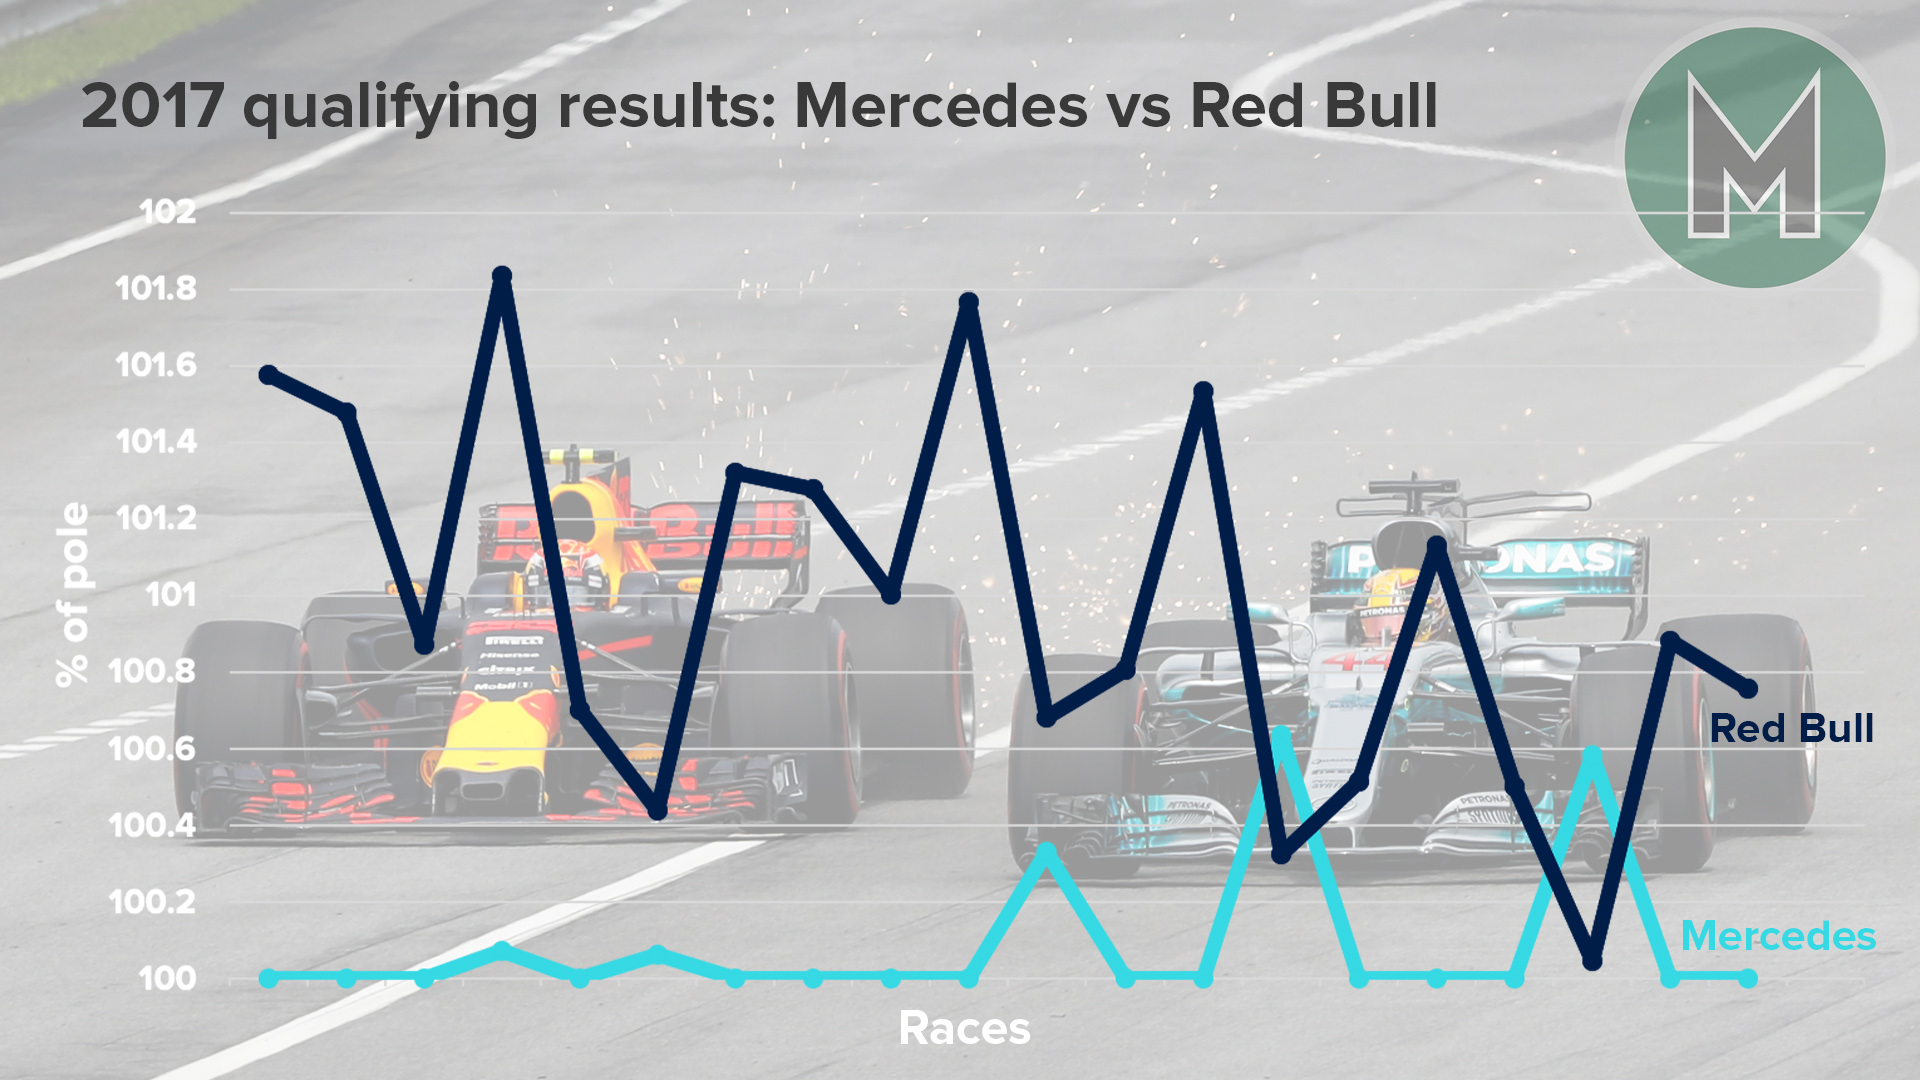 Graph showing Mercedes and Red Bull F1 qualifying performance in 2017